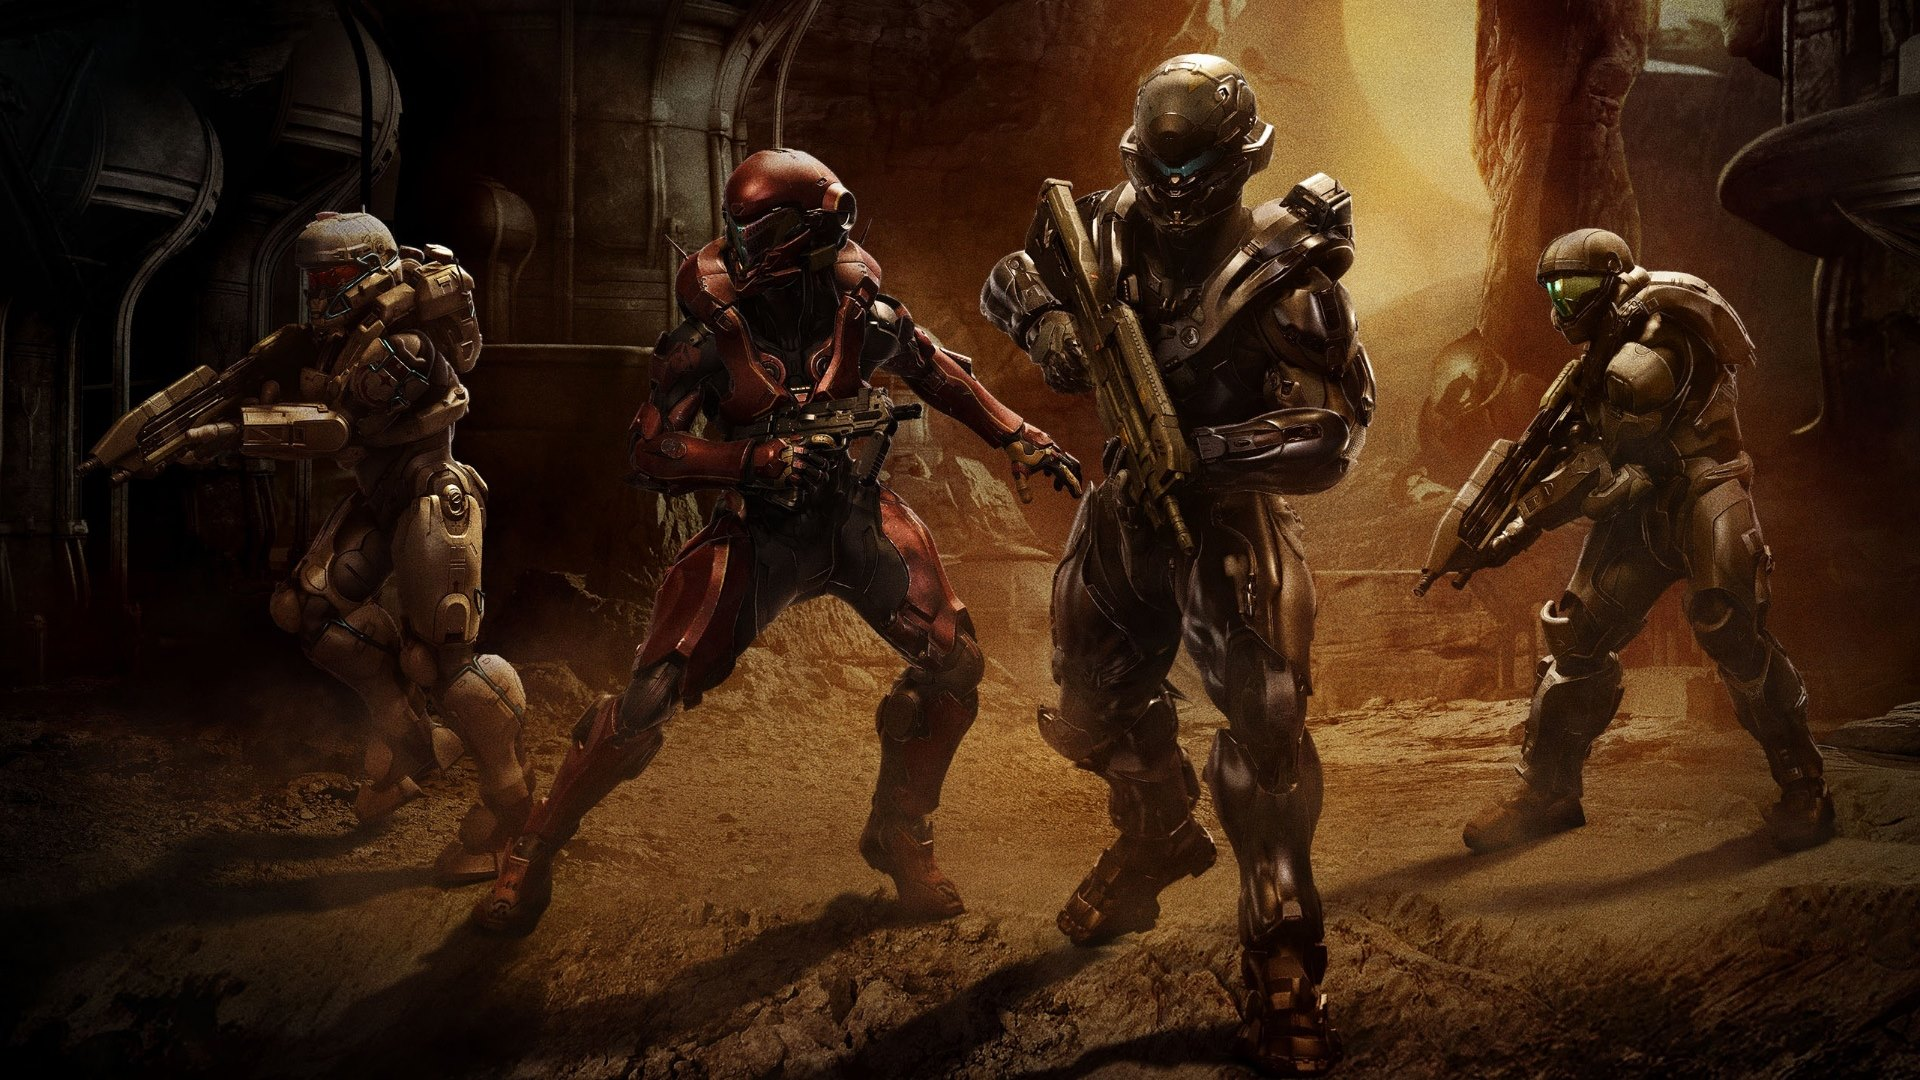 Halo 5: Guardians Game Wallpaper · HD Wallpapers